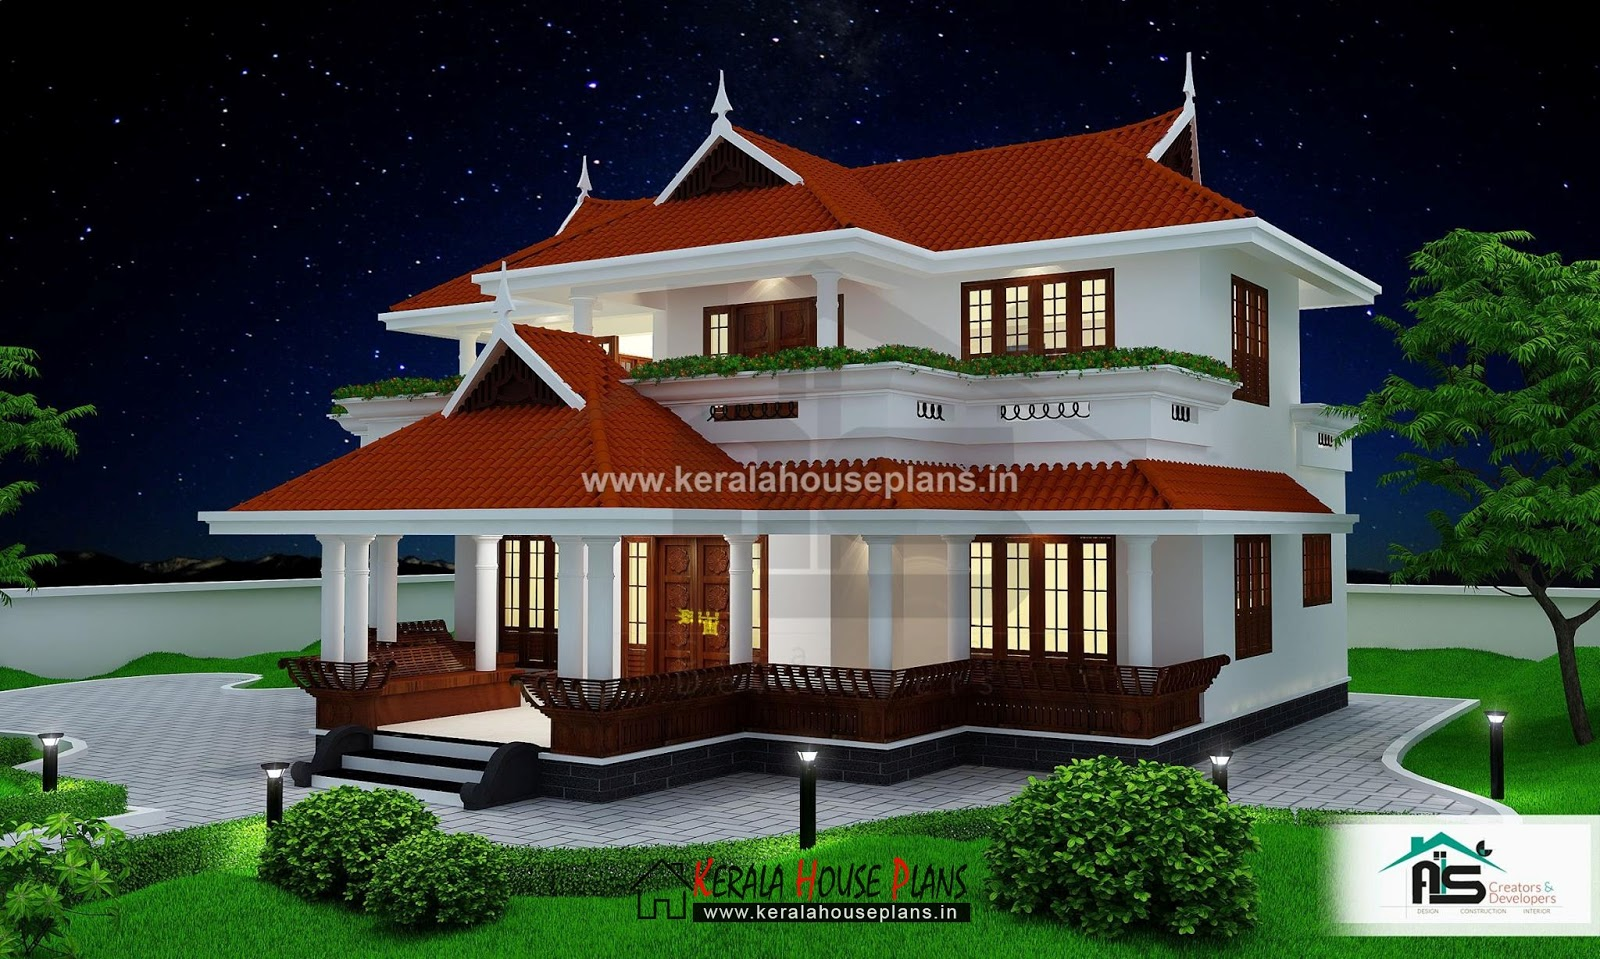 Veedu plan kerala traditional style home kerala house for House plans with photos in kerala style